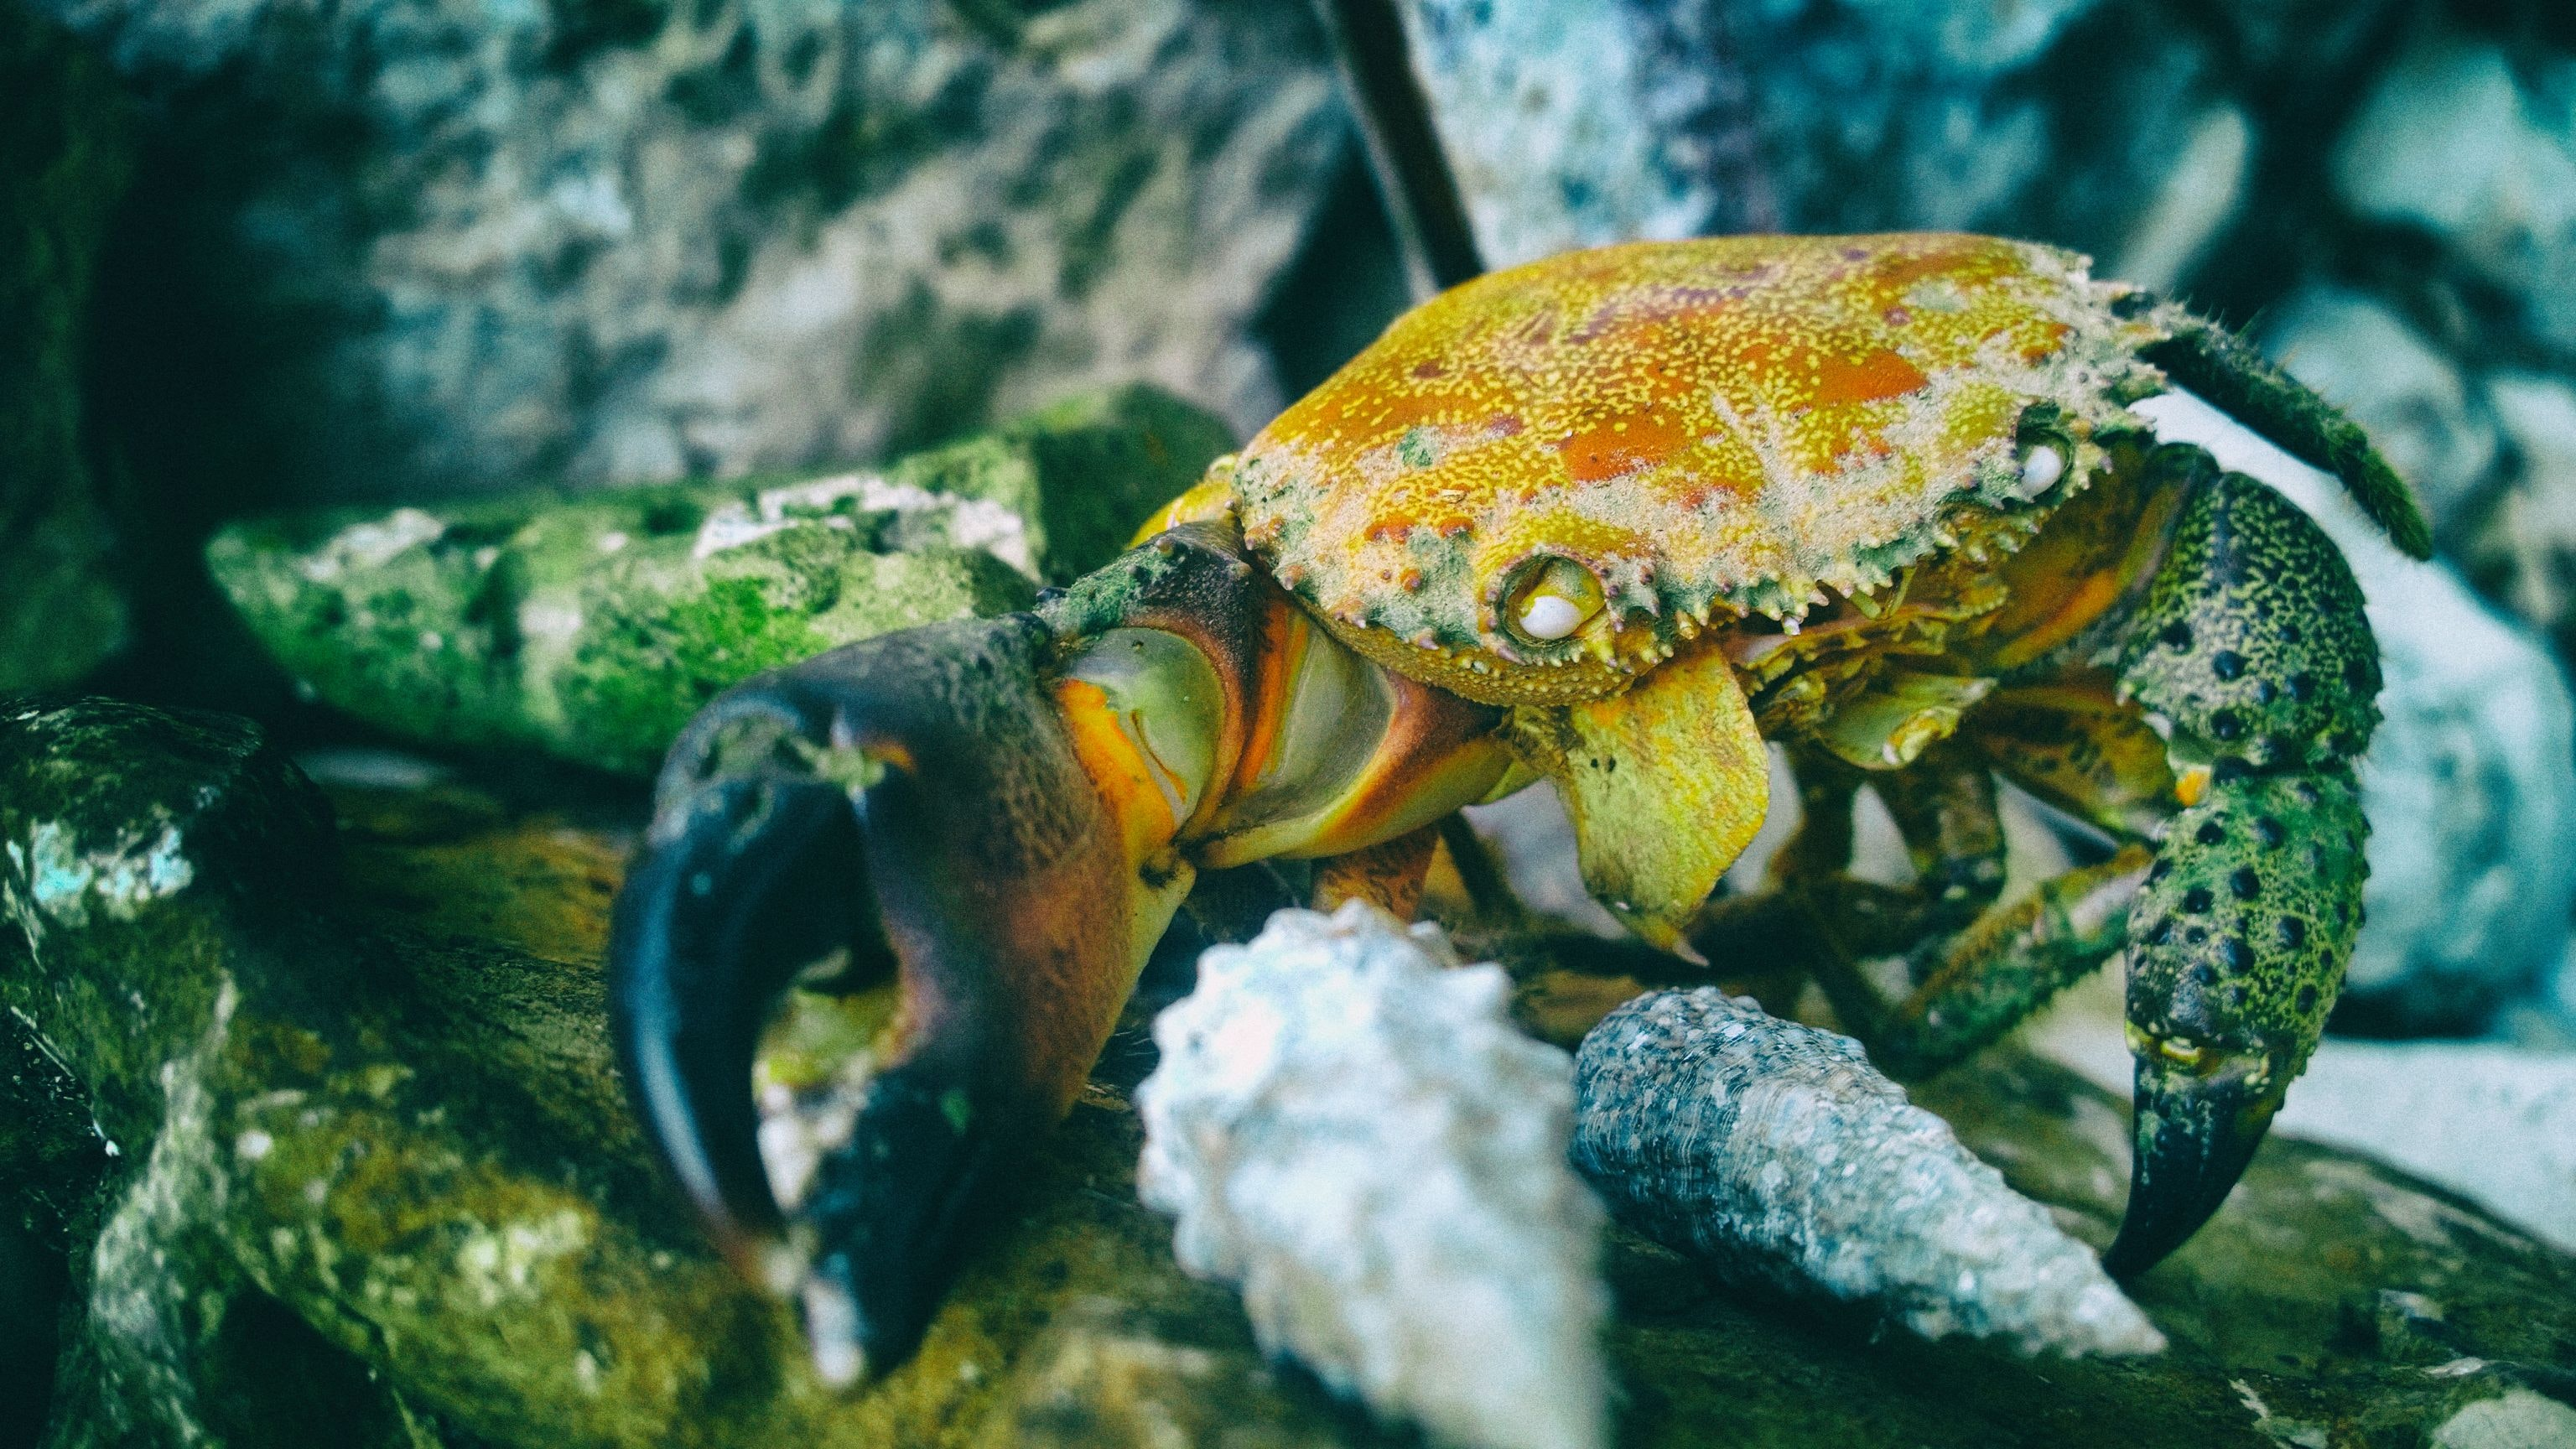 orange and black crab in macro shot phogoraphy